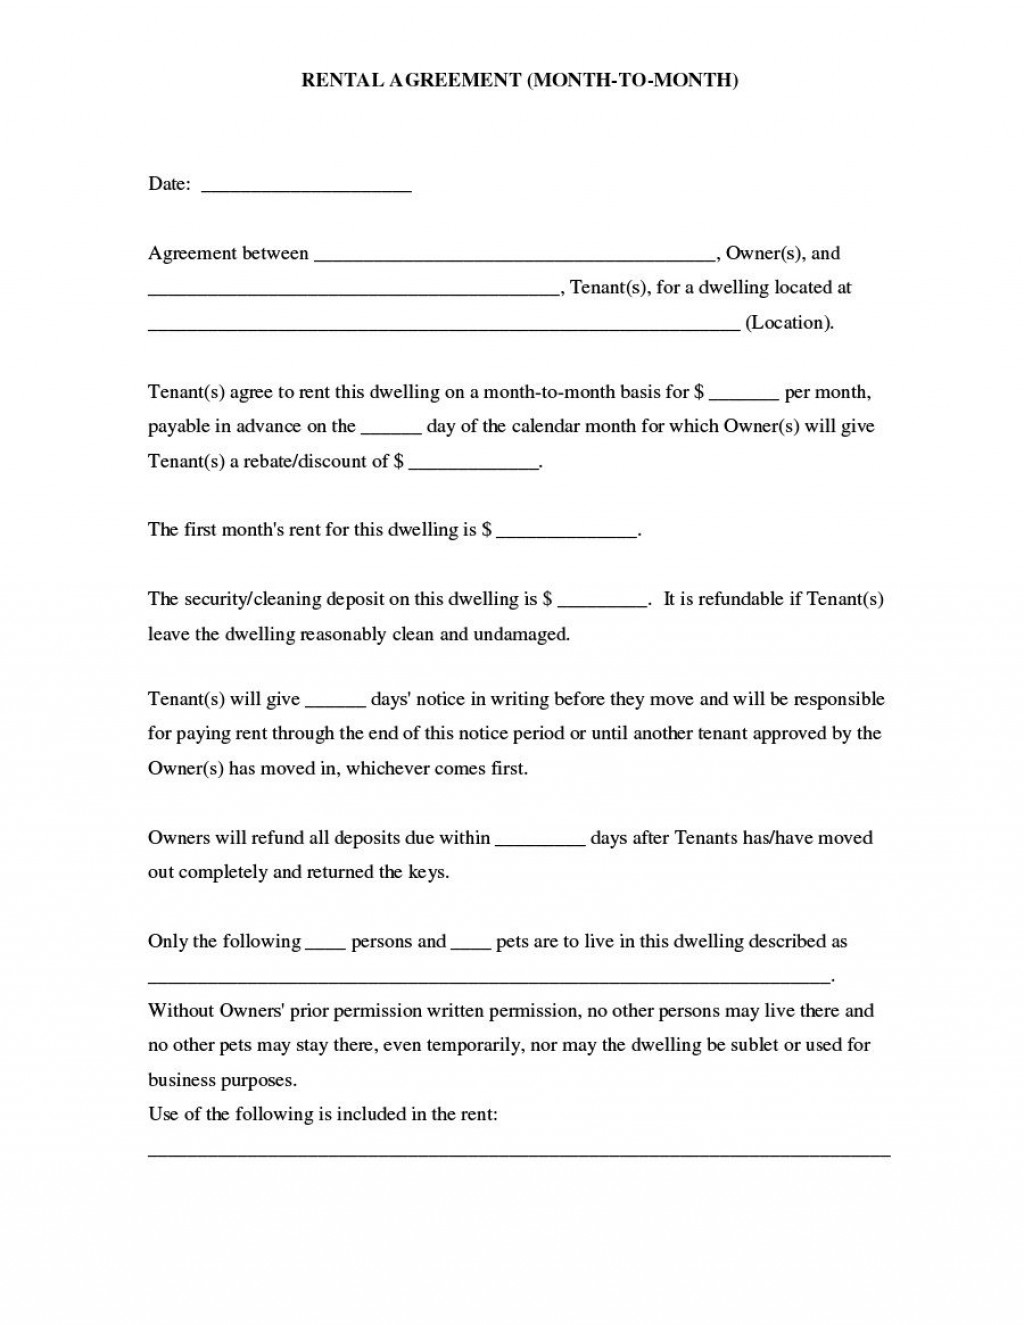 008 Unbelievable Rent Agreement Format In Word Free Download Example  Rental Tamil Hindi For HouseLarge